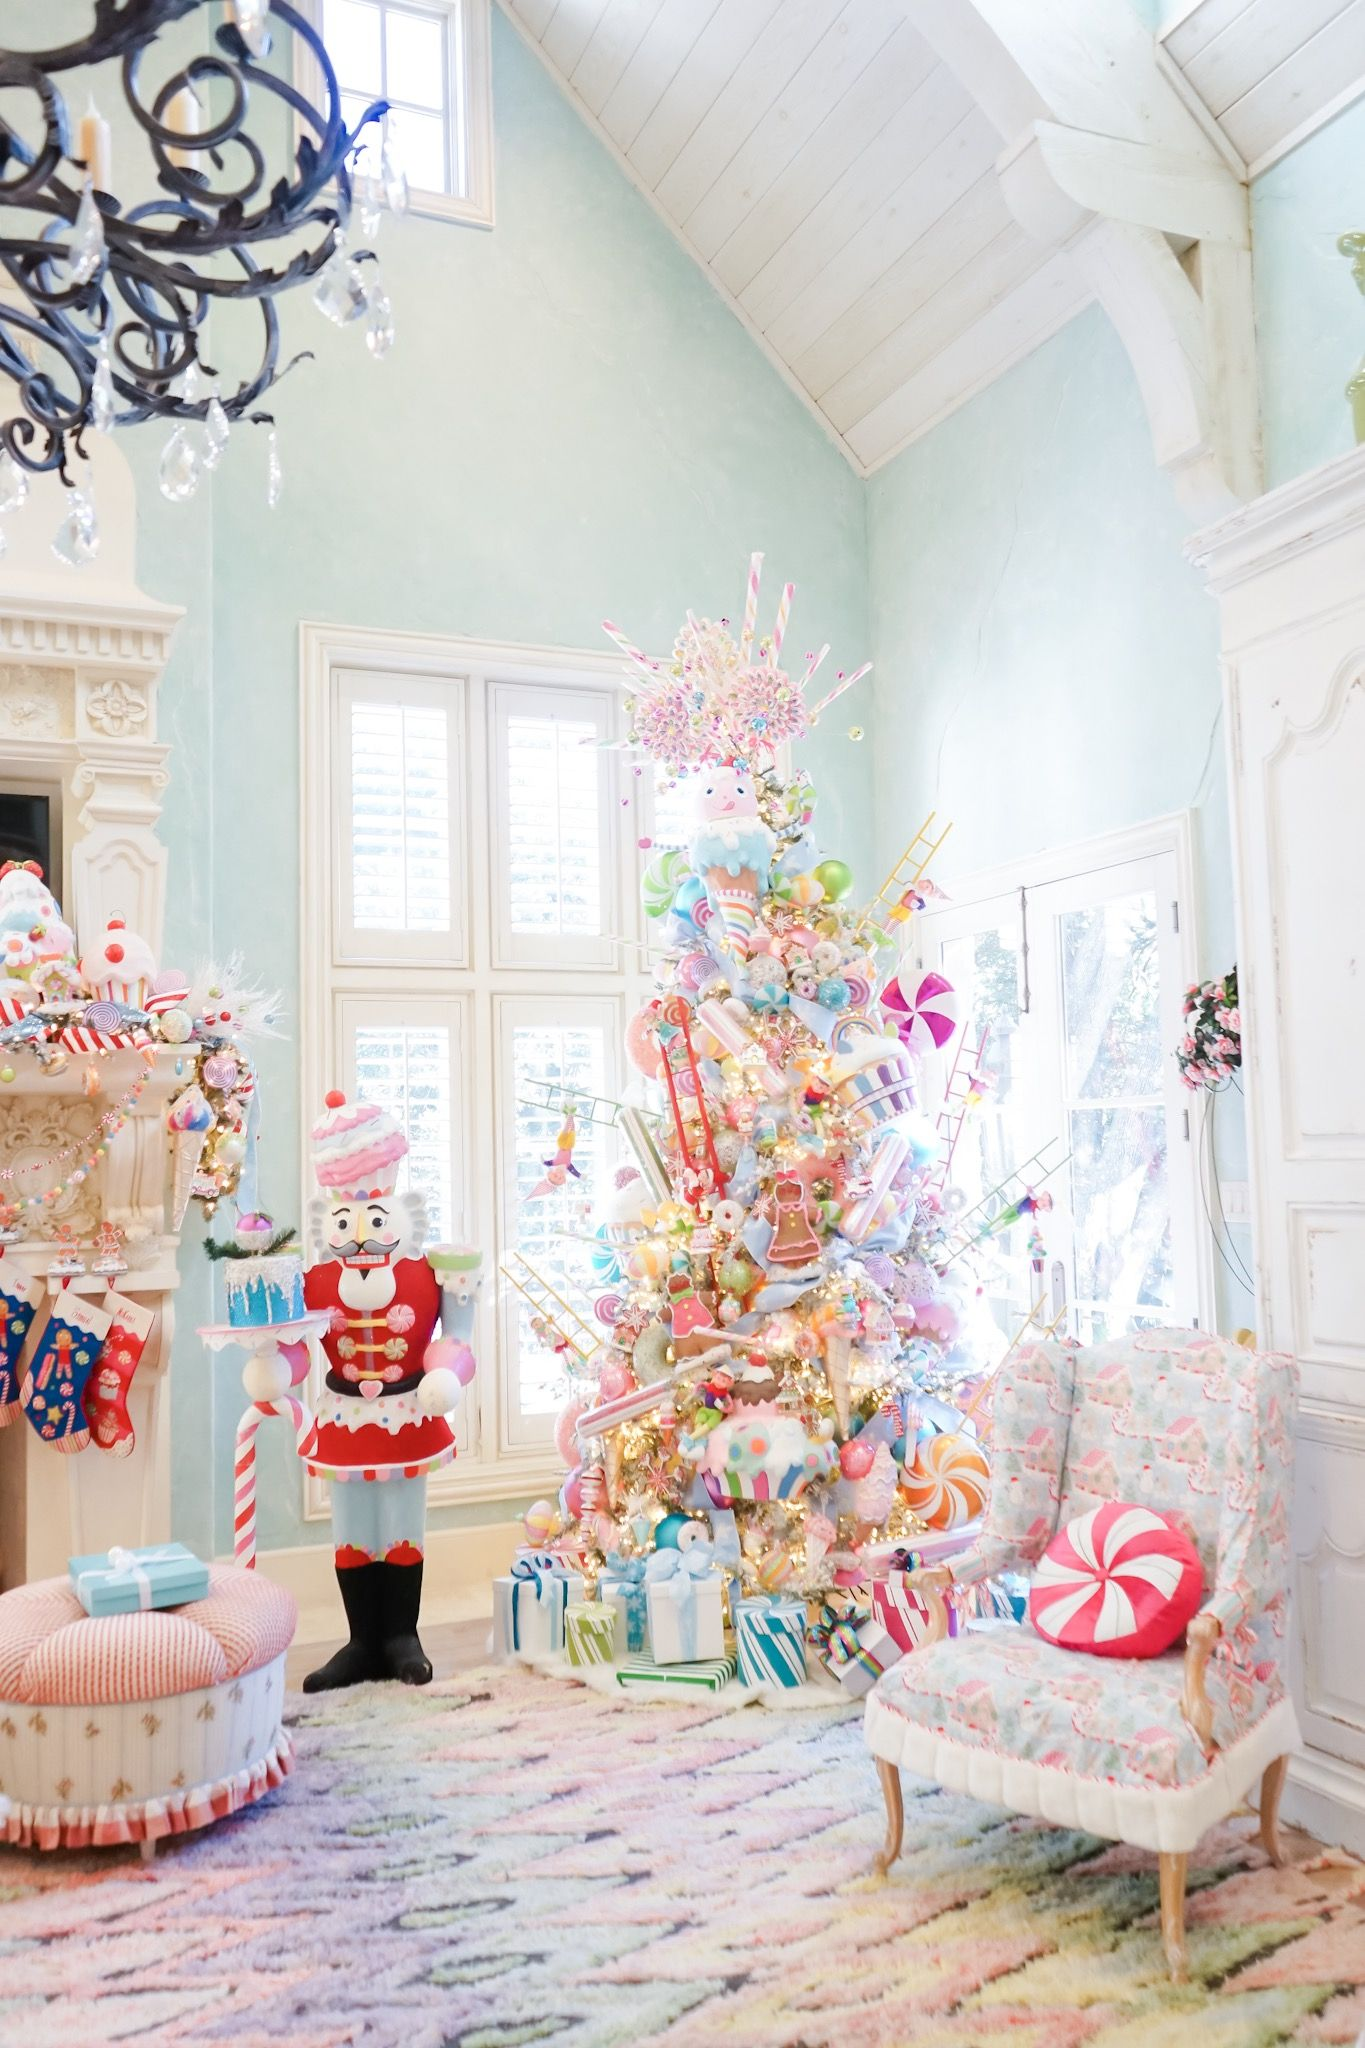 Welcome to The Land of Sweets! Our Christmas 2019 Family Room   Turtle Creek Lane